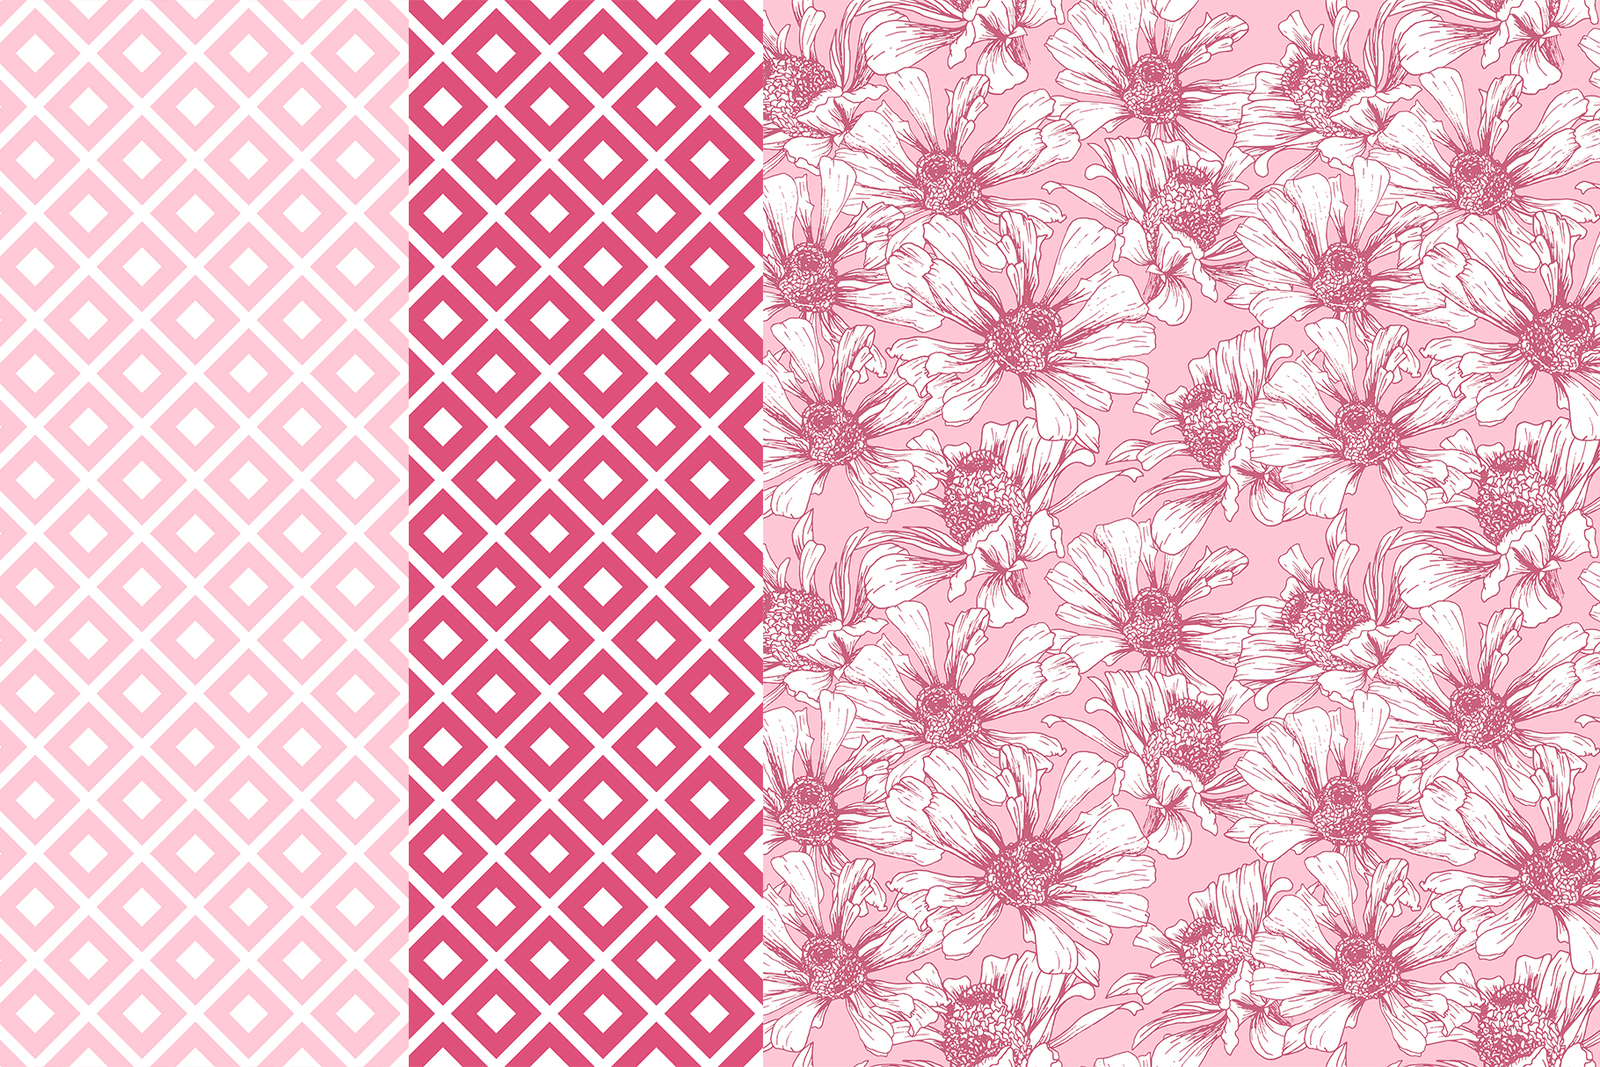 Romantic Flower Digital Papers, Seamless Patterns for Valentine's Day